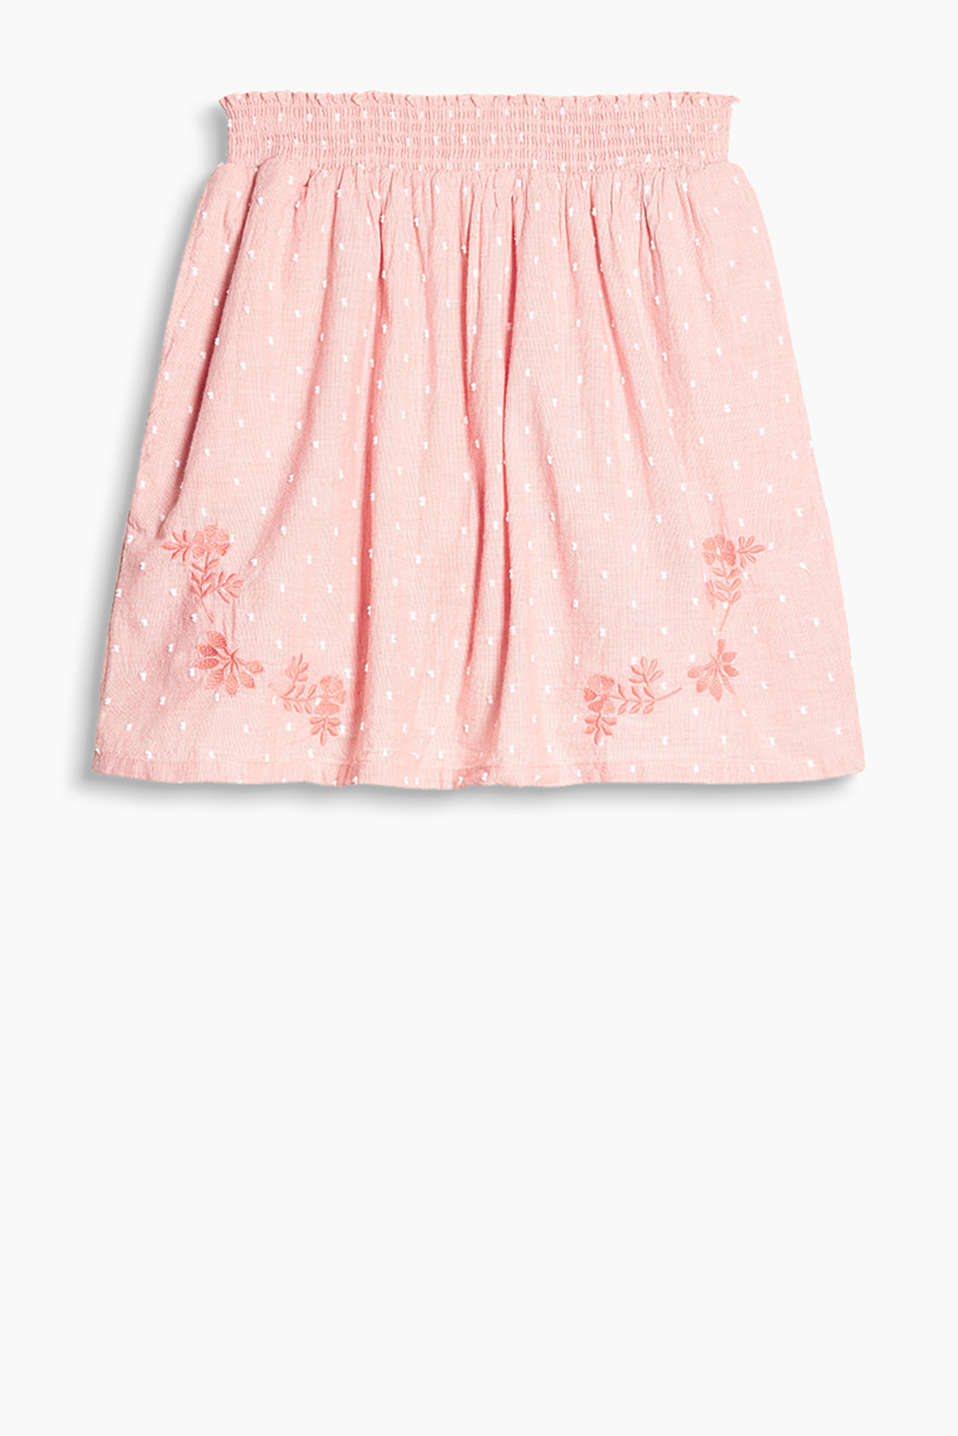 Floaty cotton skirt with an elasticated smocked hem and embroidery